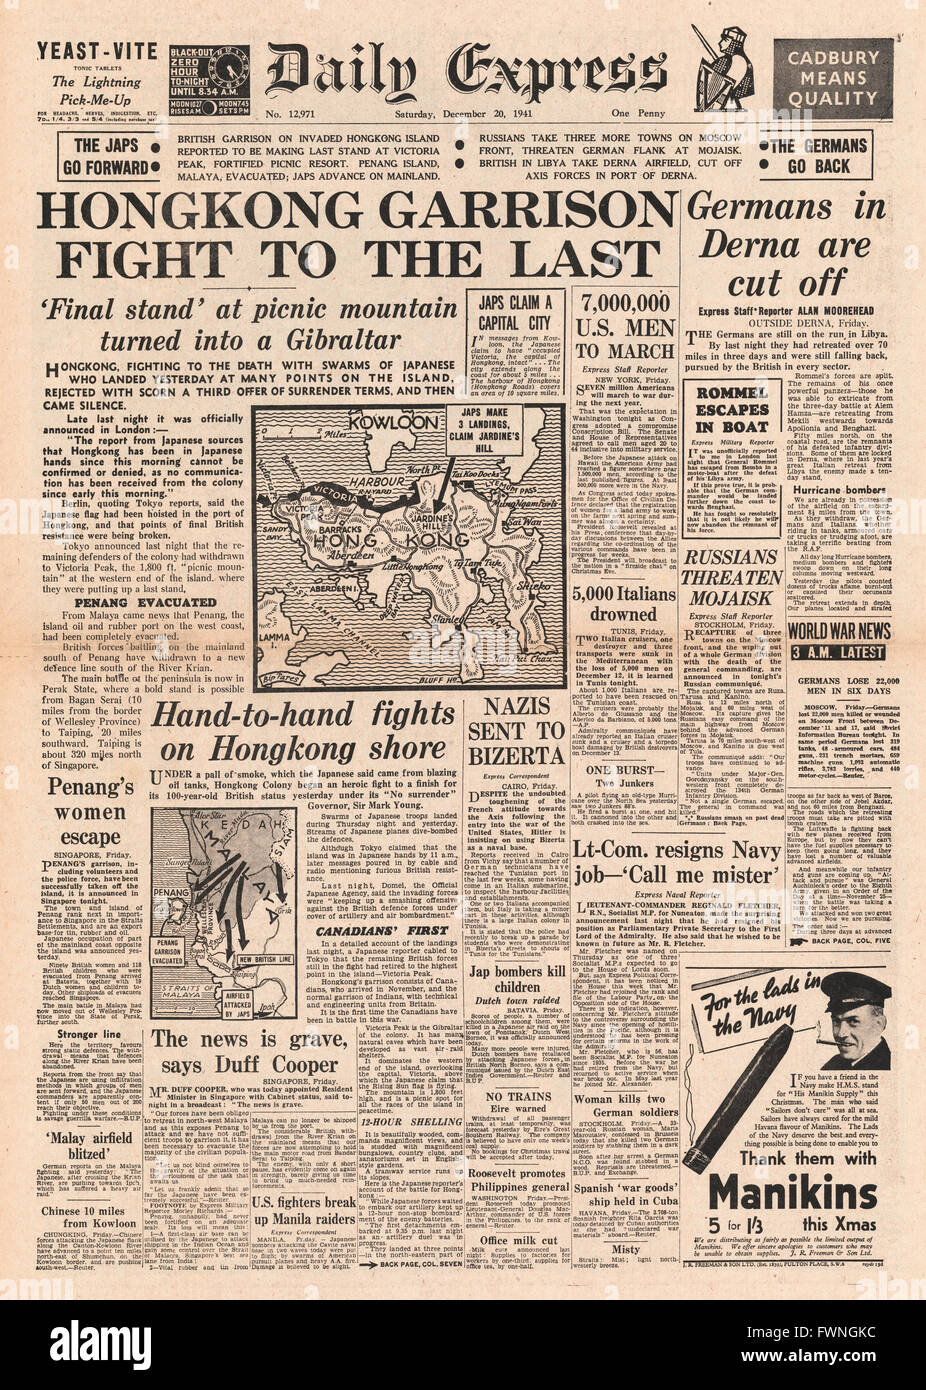 1941 front page Daily Express Battle for Hong Kong and German Army cut off in Derna - Stock Image